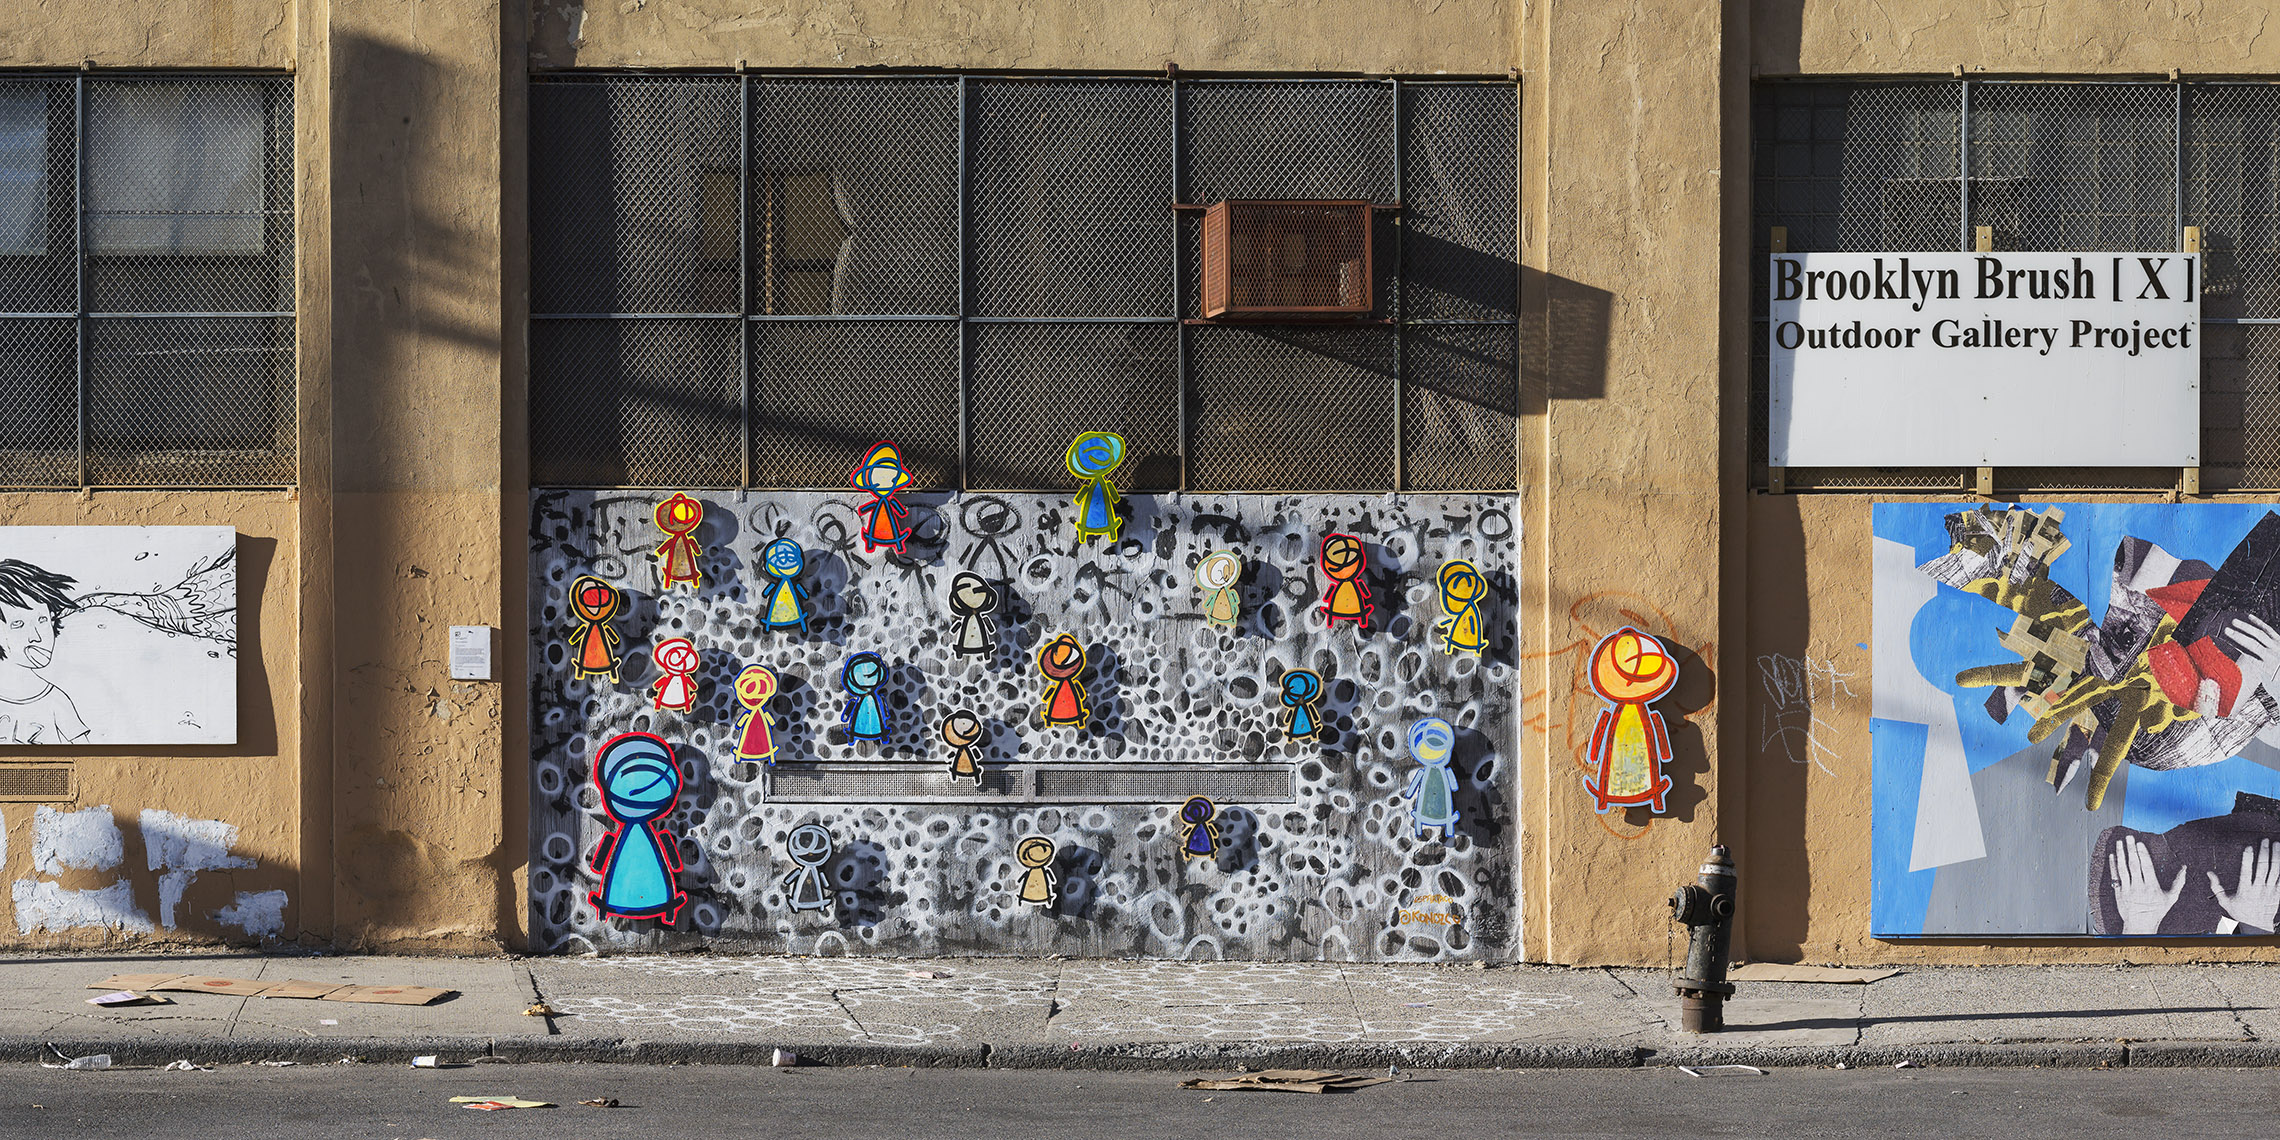 The Brooklyn Brush Outdoor Gallery